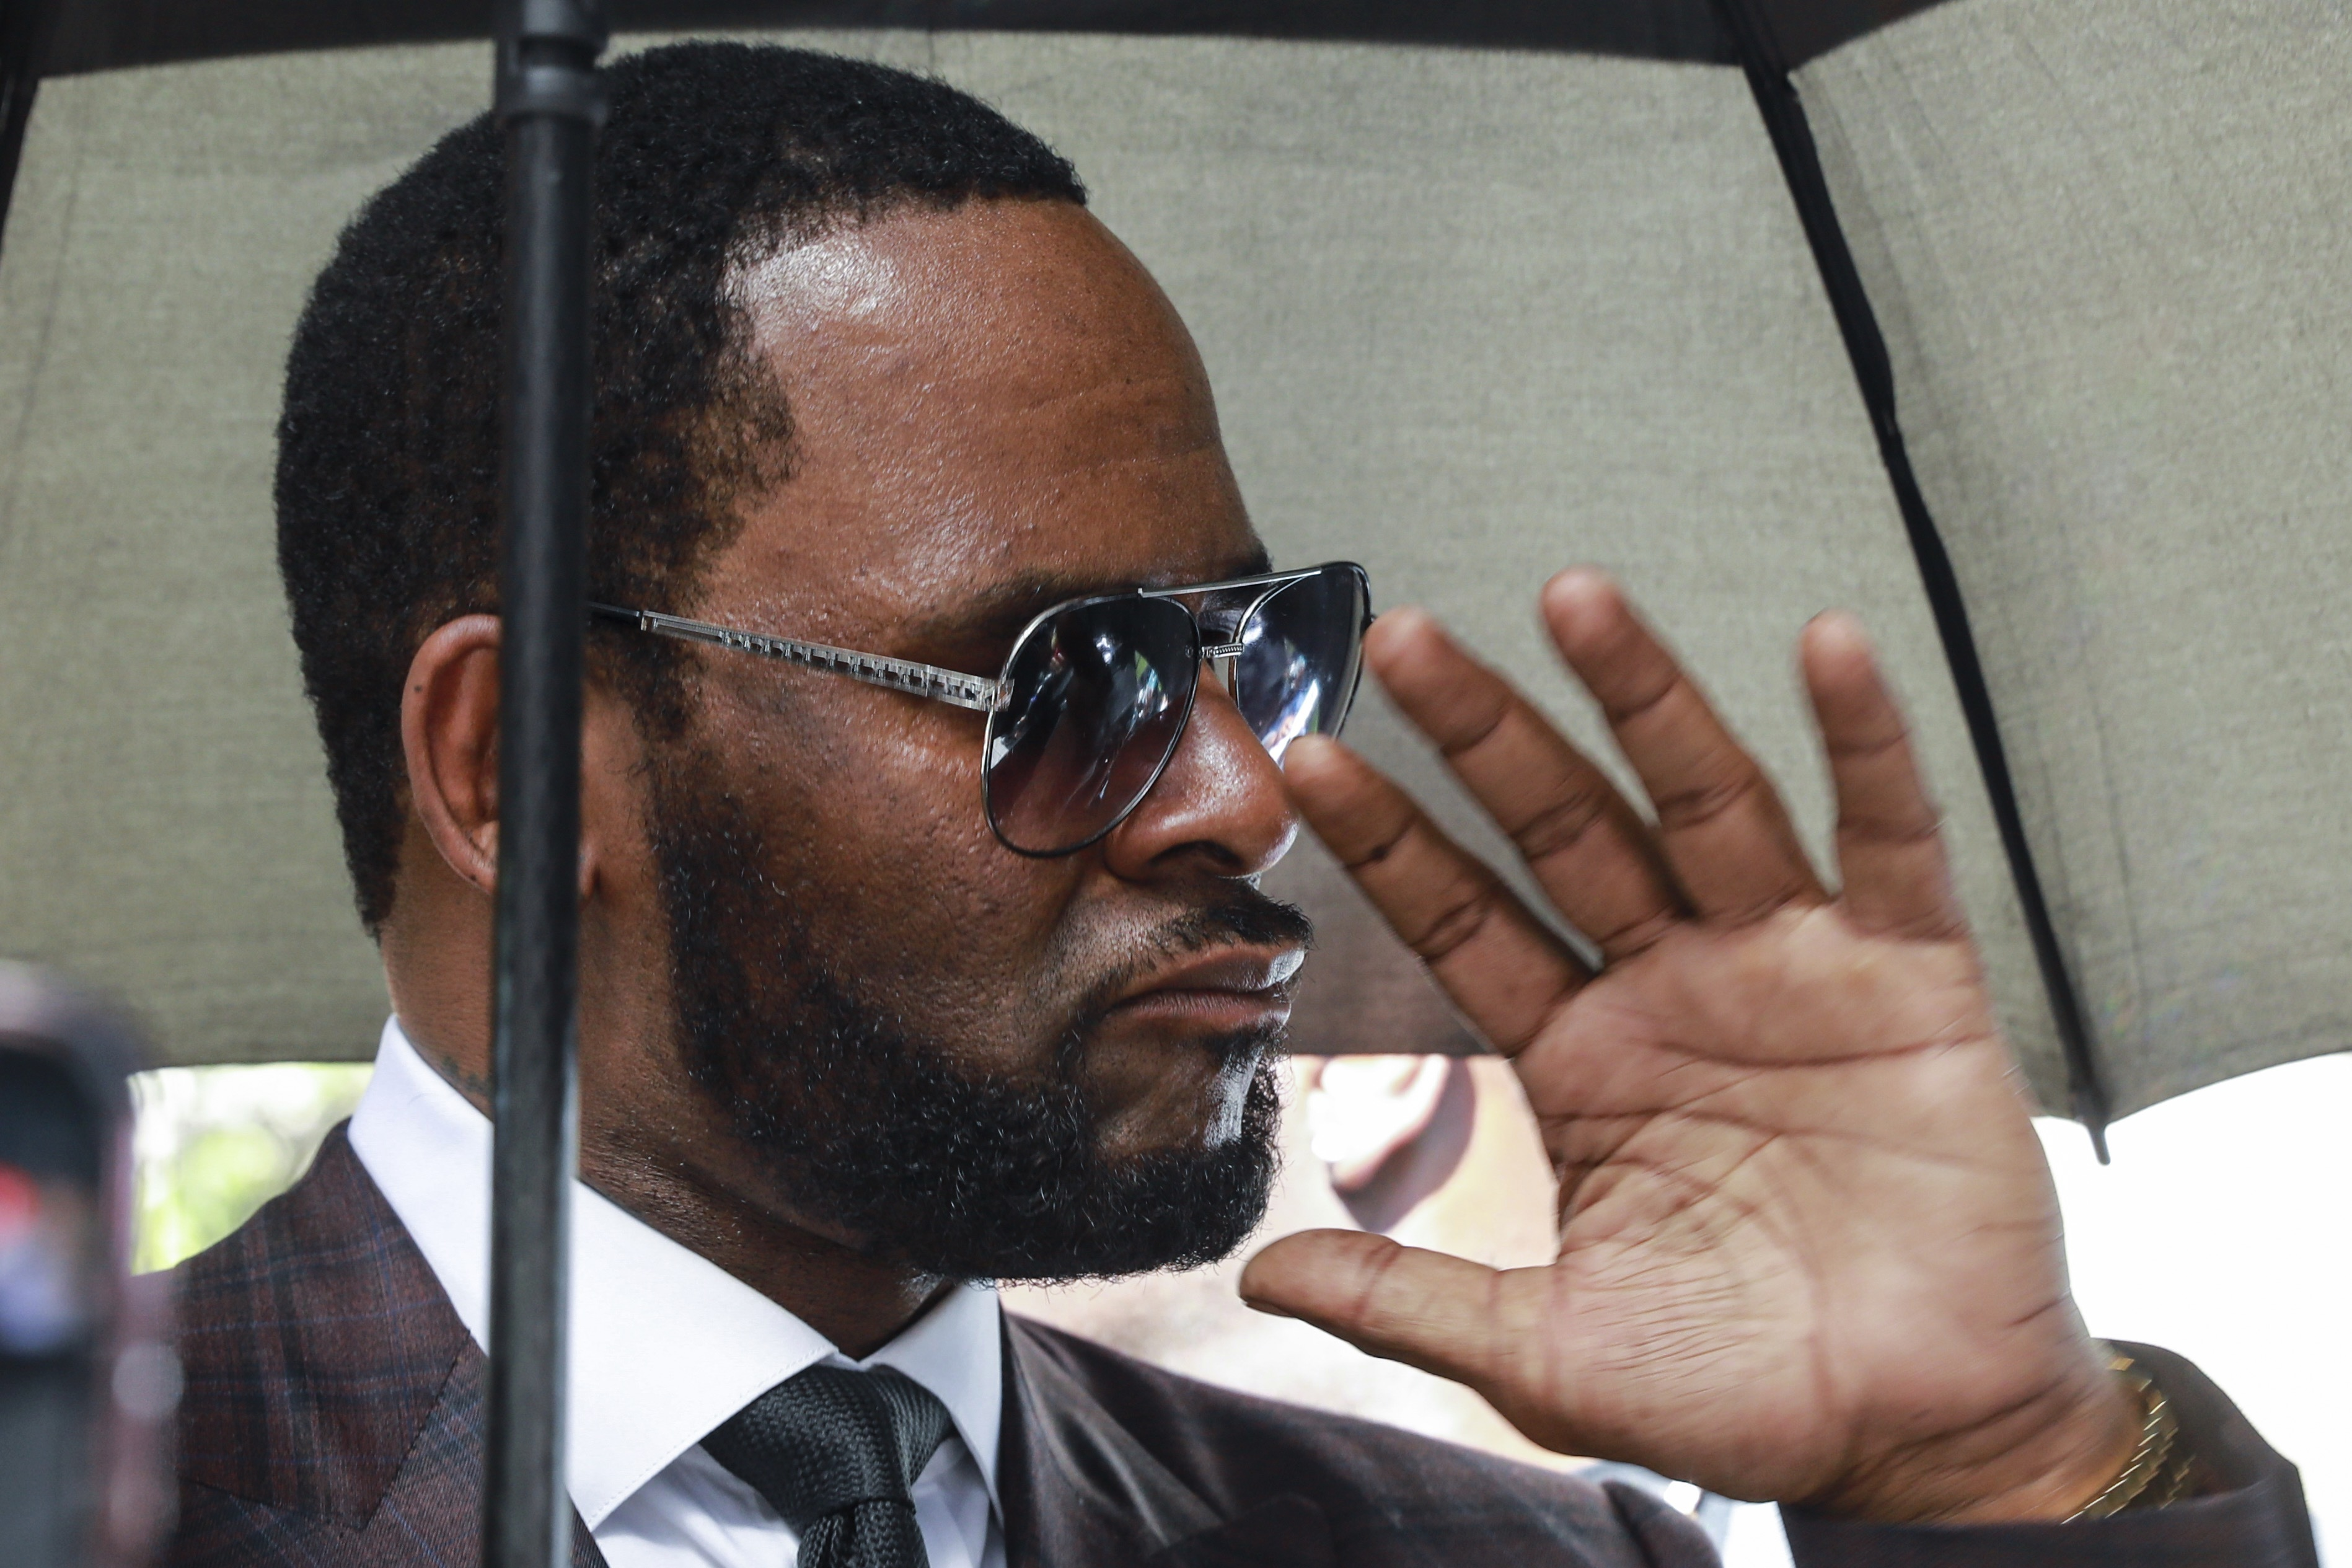 Musician R. Kelly departs from the Leighton Criminal Court building after a status hearing in his criminal sexual abuse trial Wednesday, June 26, 2019 in Chicago. (AP Photo/Amr Alfiky)